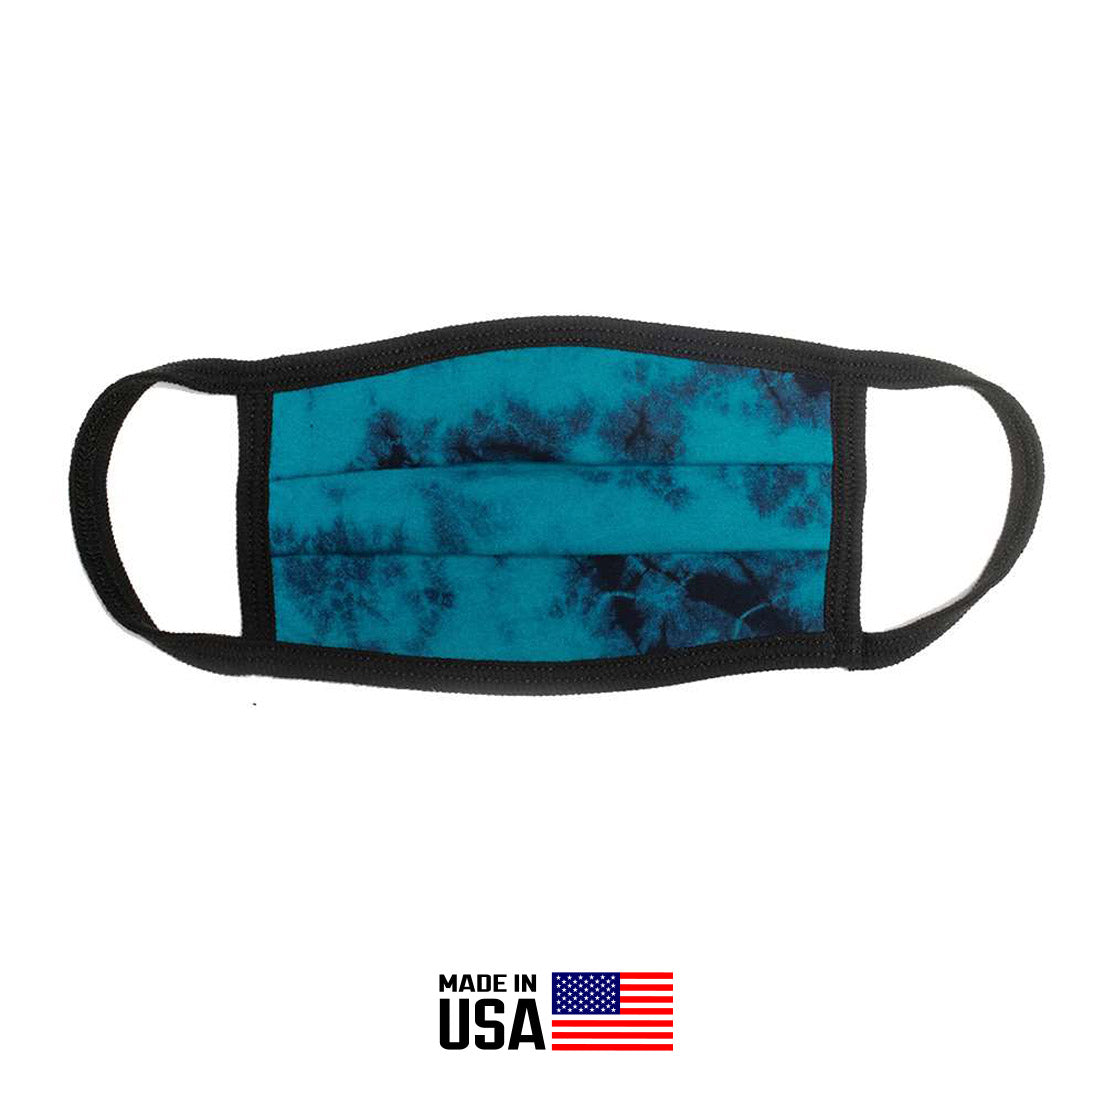 FACE MASK CLOTH 100% COTTON IN CRYSTAL WASH TEAL/NAVY